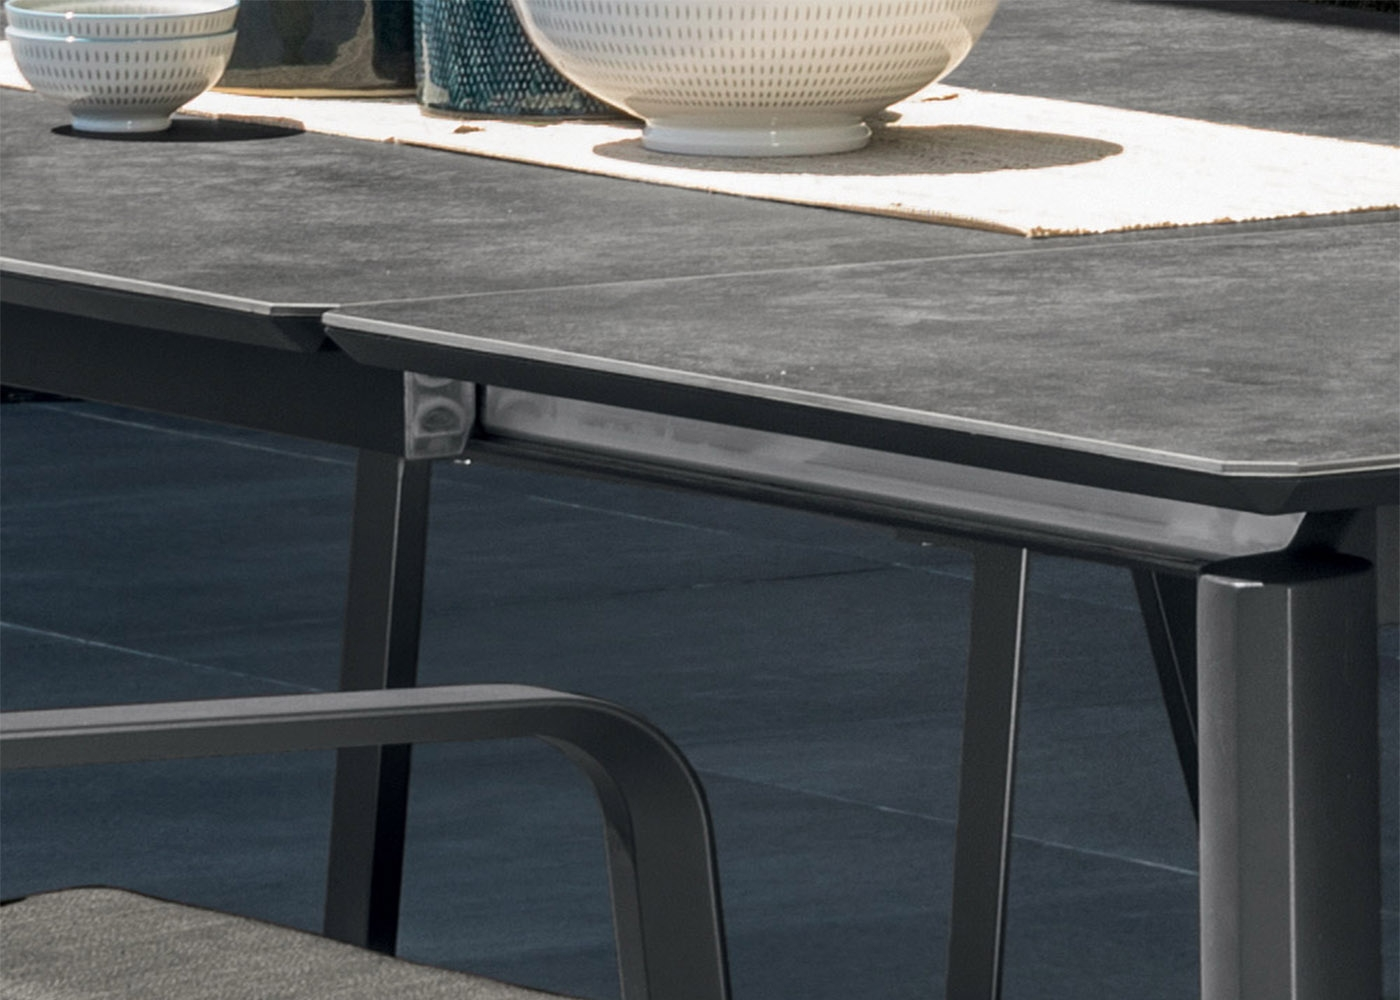 Table de d jeuner outdoor haut de gamme mlio par talenti - Table ceramique italie ...